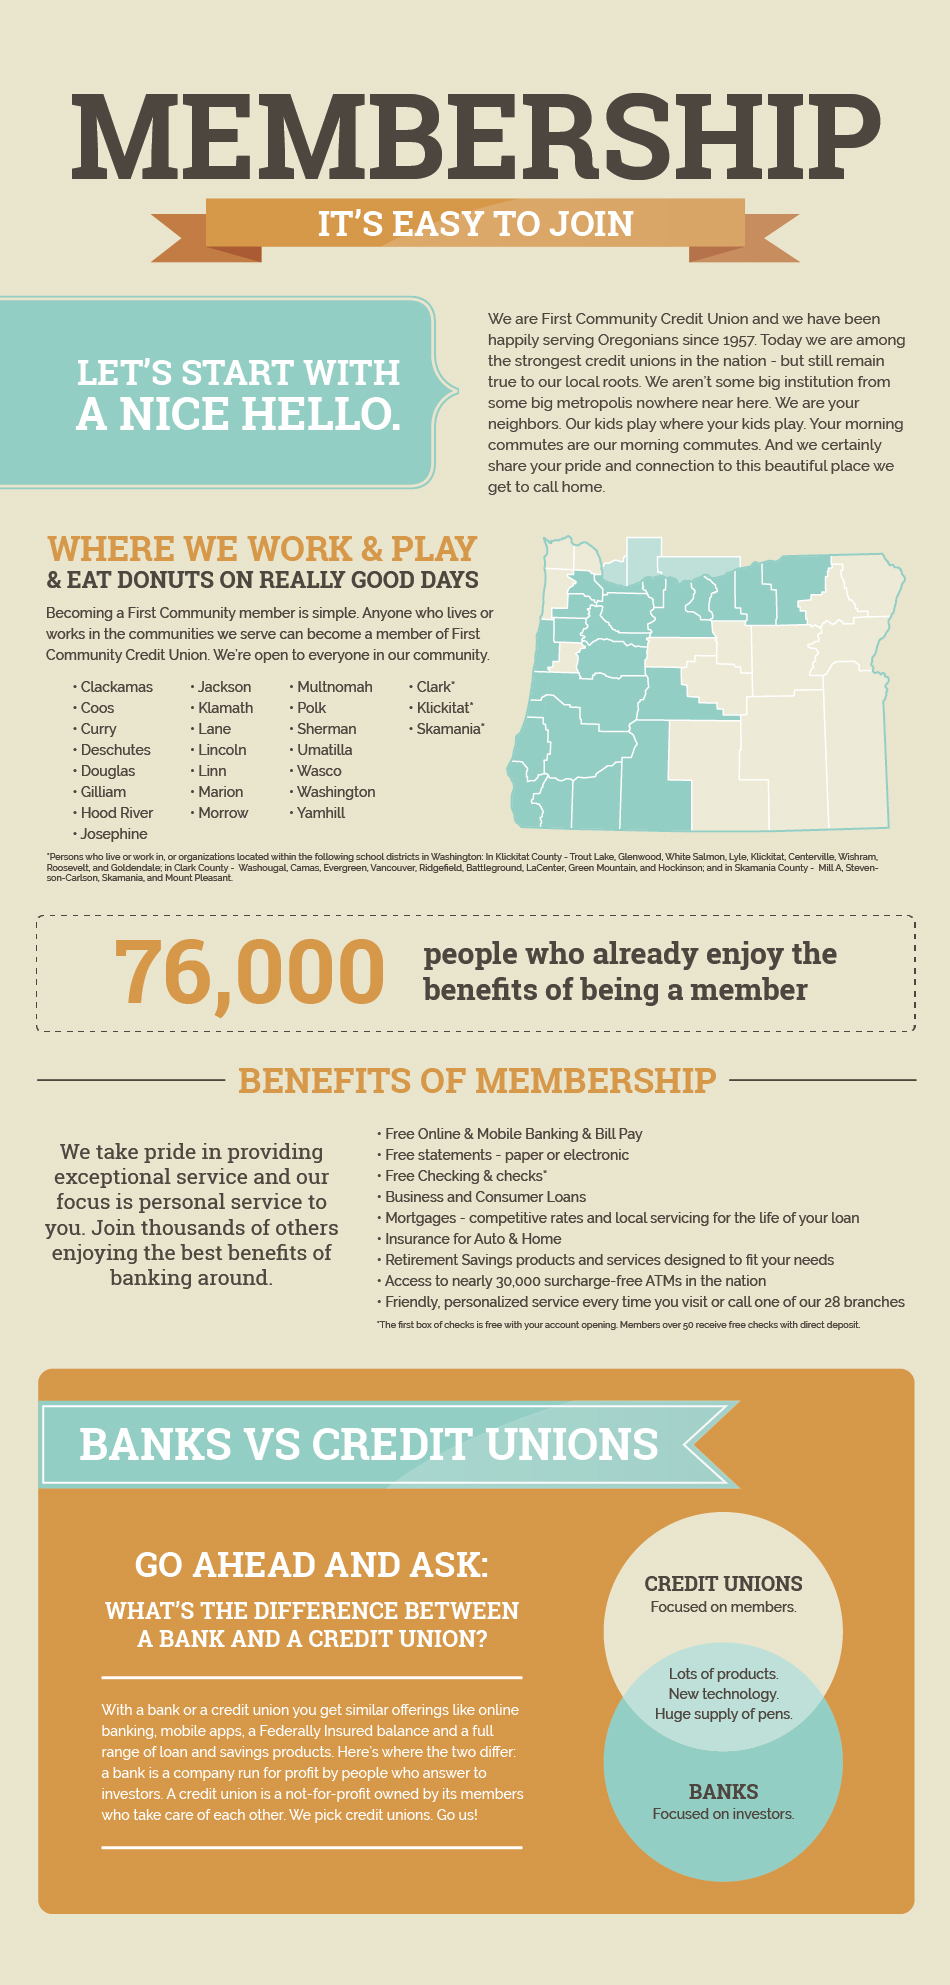 It's easy to join First Community! We've been serving Oregonians for nearly 60 years. Today we are among the strongest Credit Unions in the nation, but still remain true to our local roots. We are your neighbors. Our kids play where your kids play. Your morning commutes are our morning commutes. Becoming a First Community member is simple. Anyone who lives or works in the communities we serve can become a member of First Community. 72,000 people already enjoy the benefits of being a member. This is because we take pride in providing exceptional service to you. Go ahead and ask: What's the difference between a bank and a credit union? Either way, you get similar offerings like online banking, mobile apps, a Federally insured balance and a full range of loan and savings products. Here's where the two differ: A bank is a company run for profit by people who answer to investors. A credit union is a not-for-profit owned by its members who take care of each other. We pick credit unions. Go us!